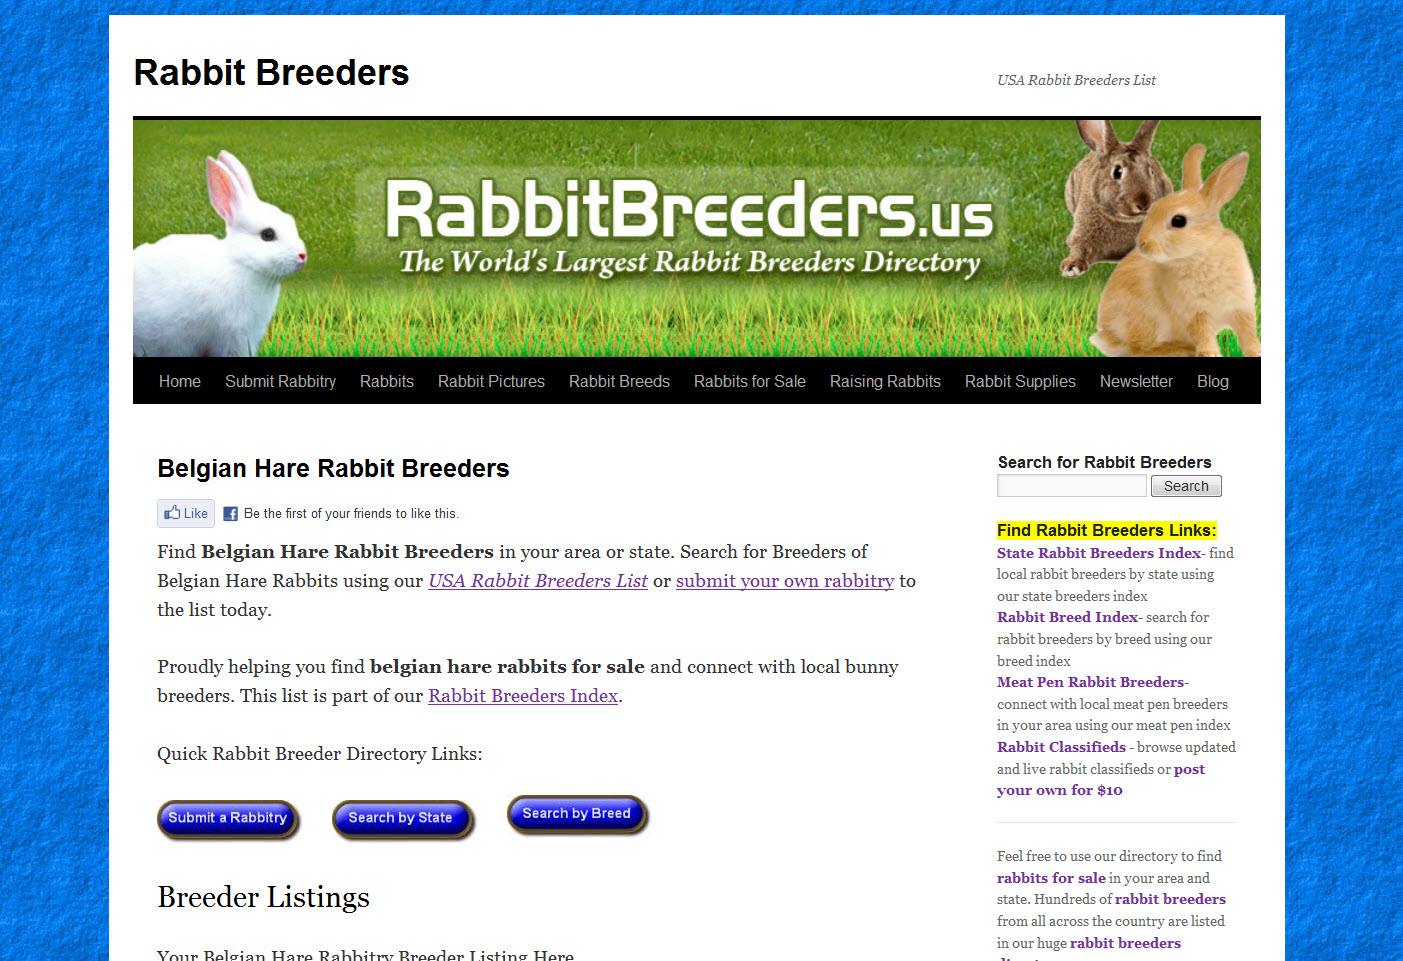 Belgian Hare Rabbits for Sale